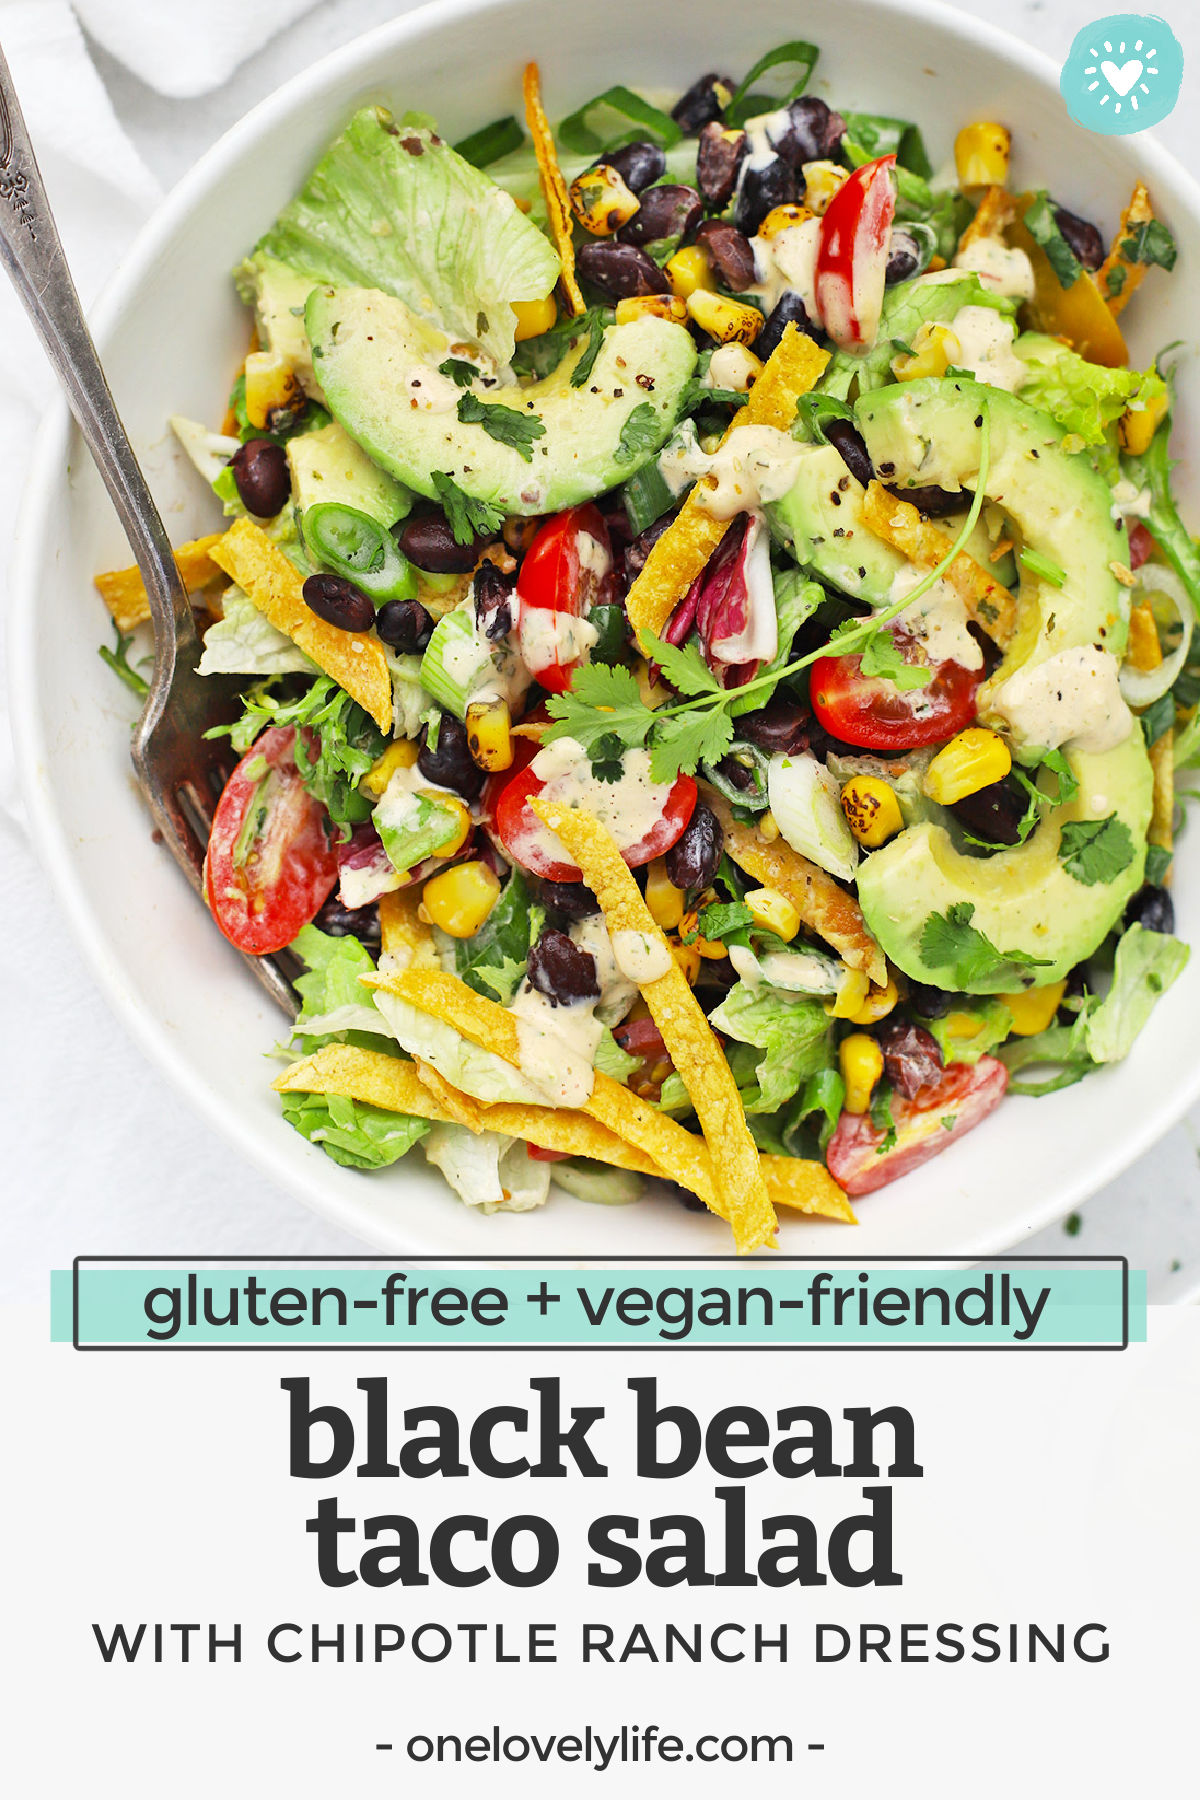 Black Bean Taco Salad - A gorgeous vegetarian taco salad with colorful veggies and a creamy dressing that'll keep you coming back for more! (Gluten-Free, Vegan-Friendly) // Vegan Taco Salad // Meatless Monday // Vegan Dinner // Healthy Dinner // Vegetarian Dinner #glutenfree #vegan #tacosalad #vegetarian #healthydinner